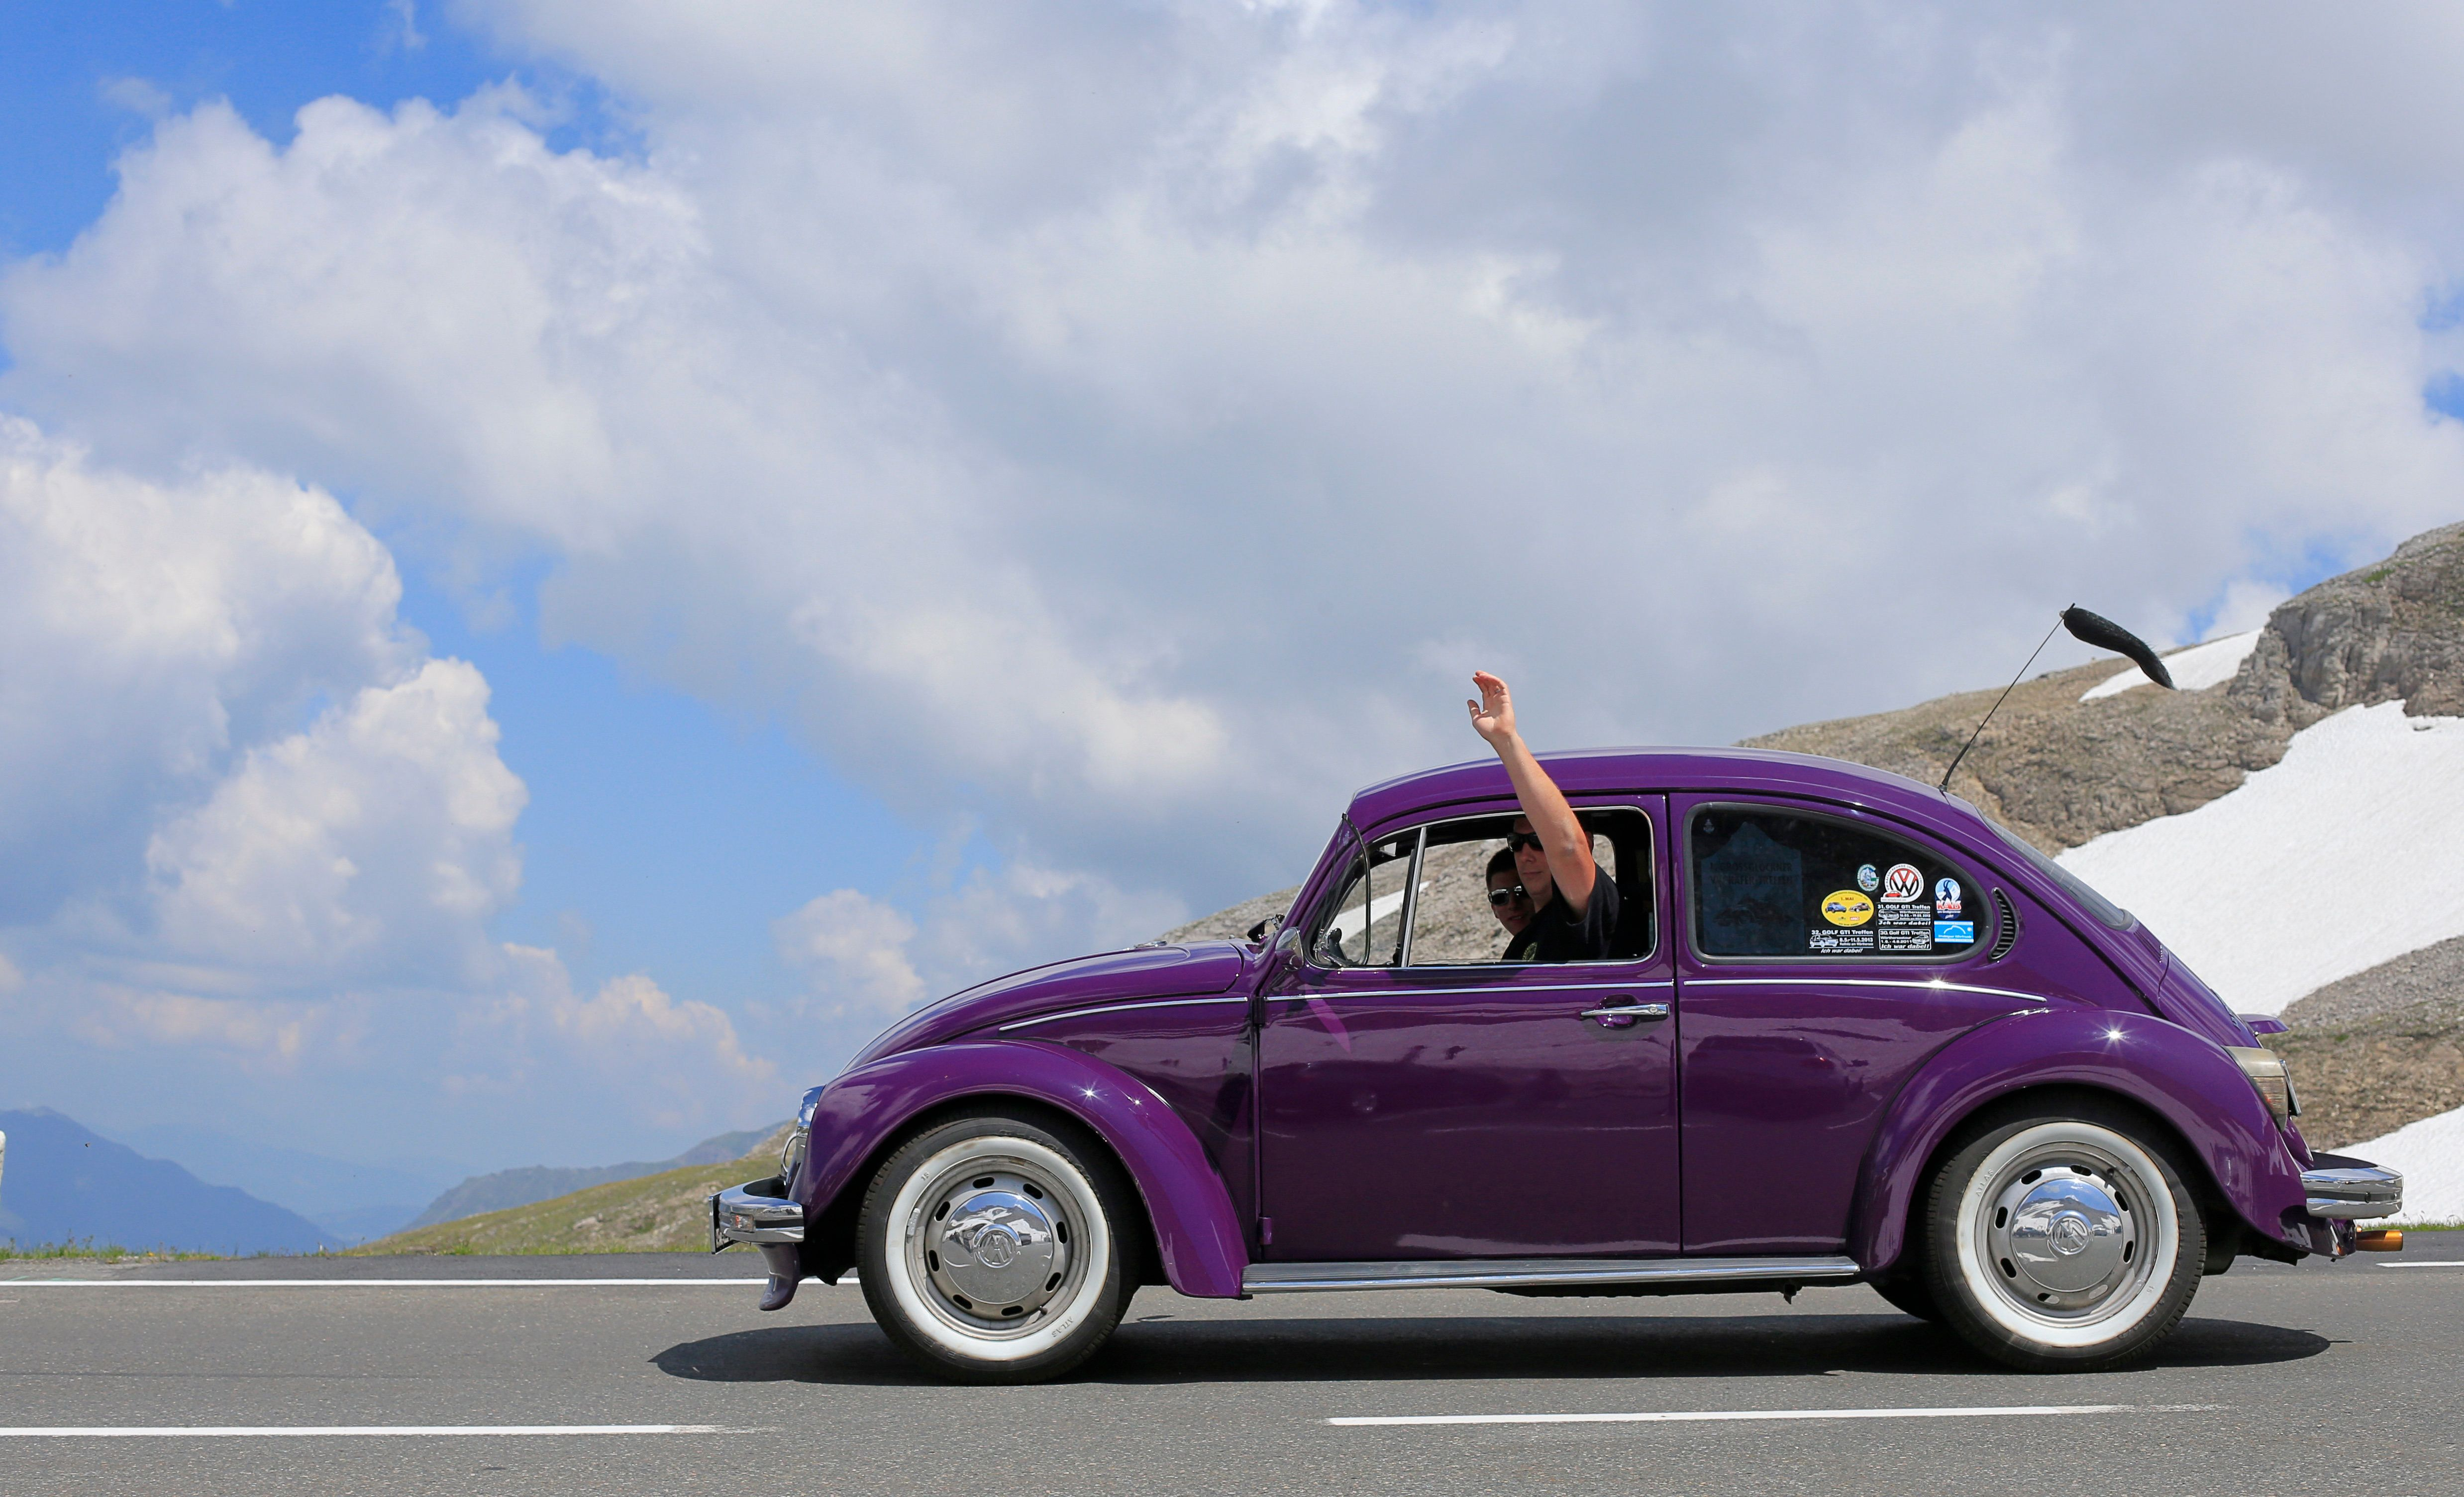 Historic car enthusiasts drive a vintage Volkswagen Beetle during a classic car excursion on the Grossglockner high alpine road (Grossglockner-Hochalpenstrasse), at the Hochtor pass in the mountains of the Hohe Tauern, near Zell am See, on July 21, 2013. The famous 48-kilometer long Austrian road is among the most renowned alpine roads with spectacular scenic views. AFP PHOTO / ALEXANDER KLEIN        (Photo credit should read ALEXANDER KLEIN/AFP/Getty Images)